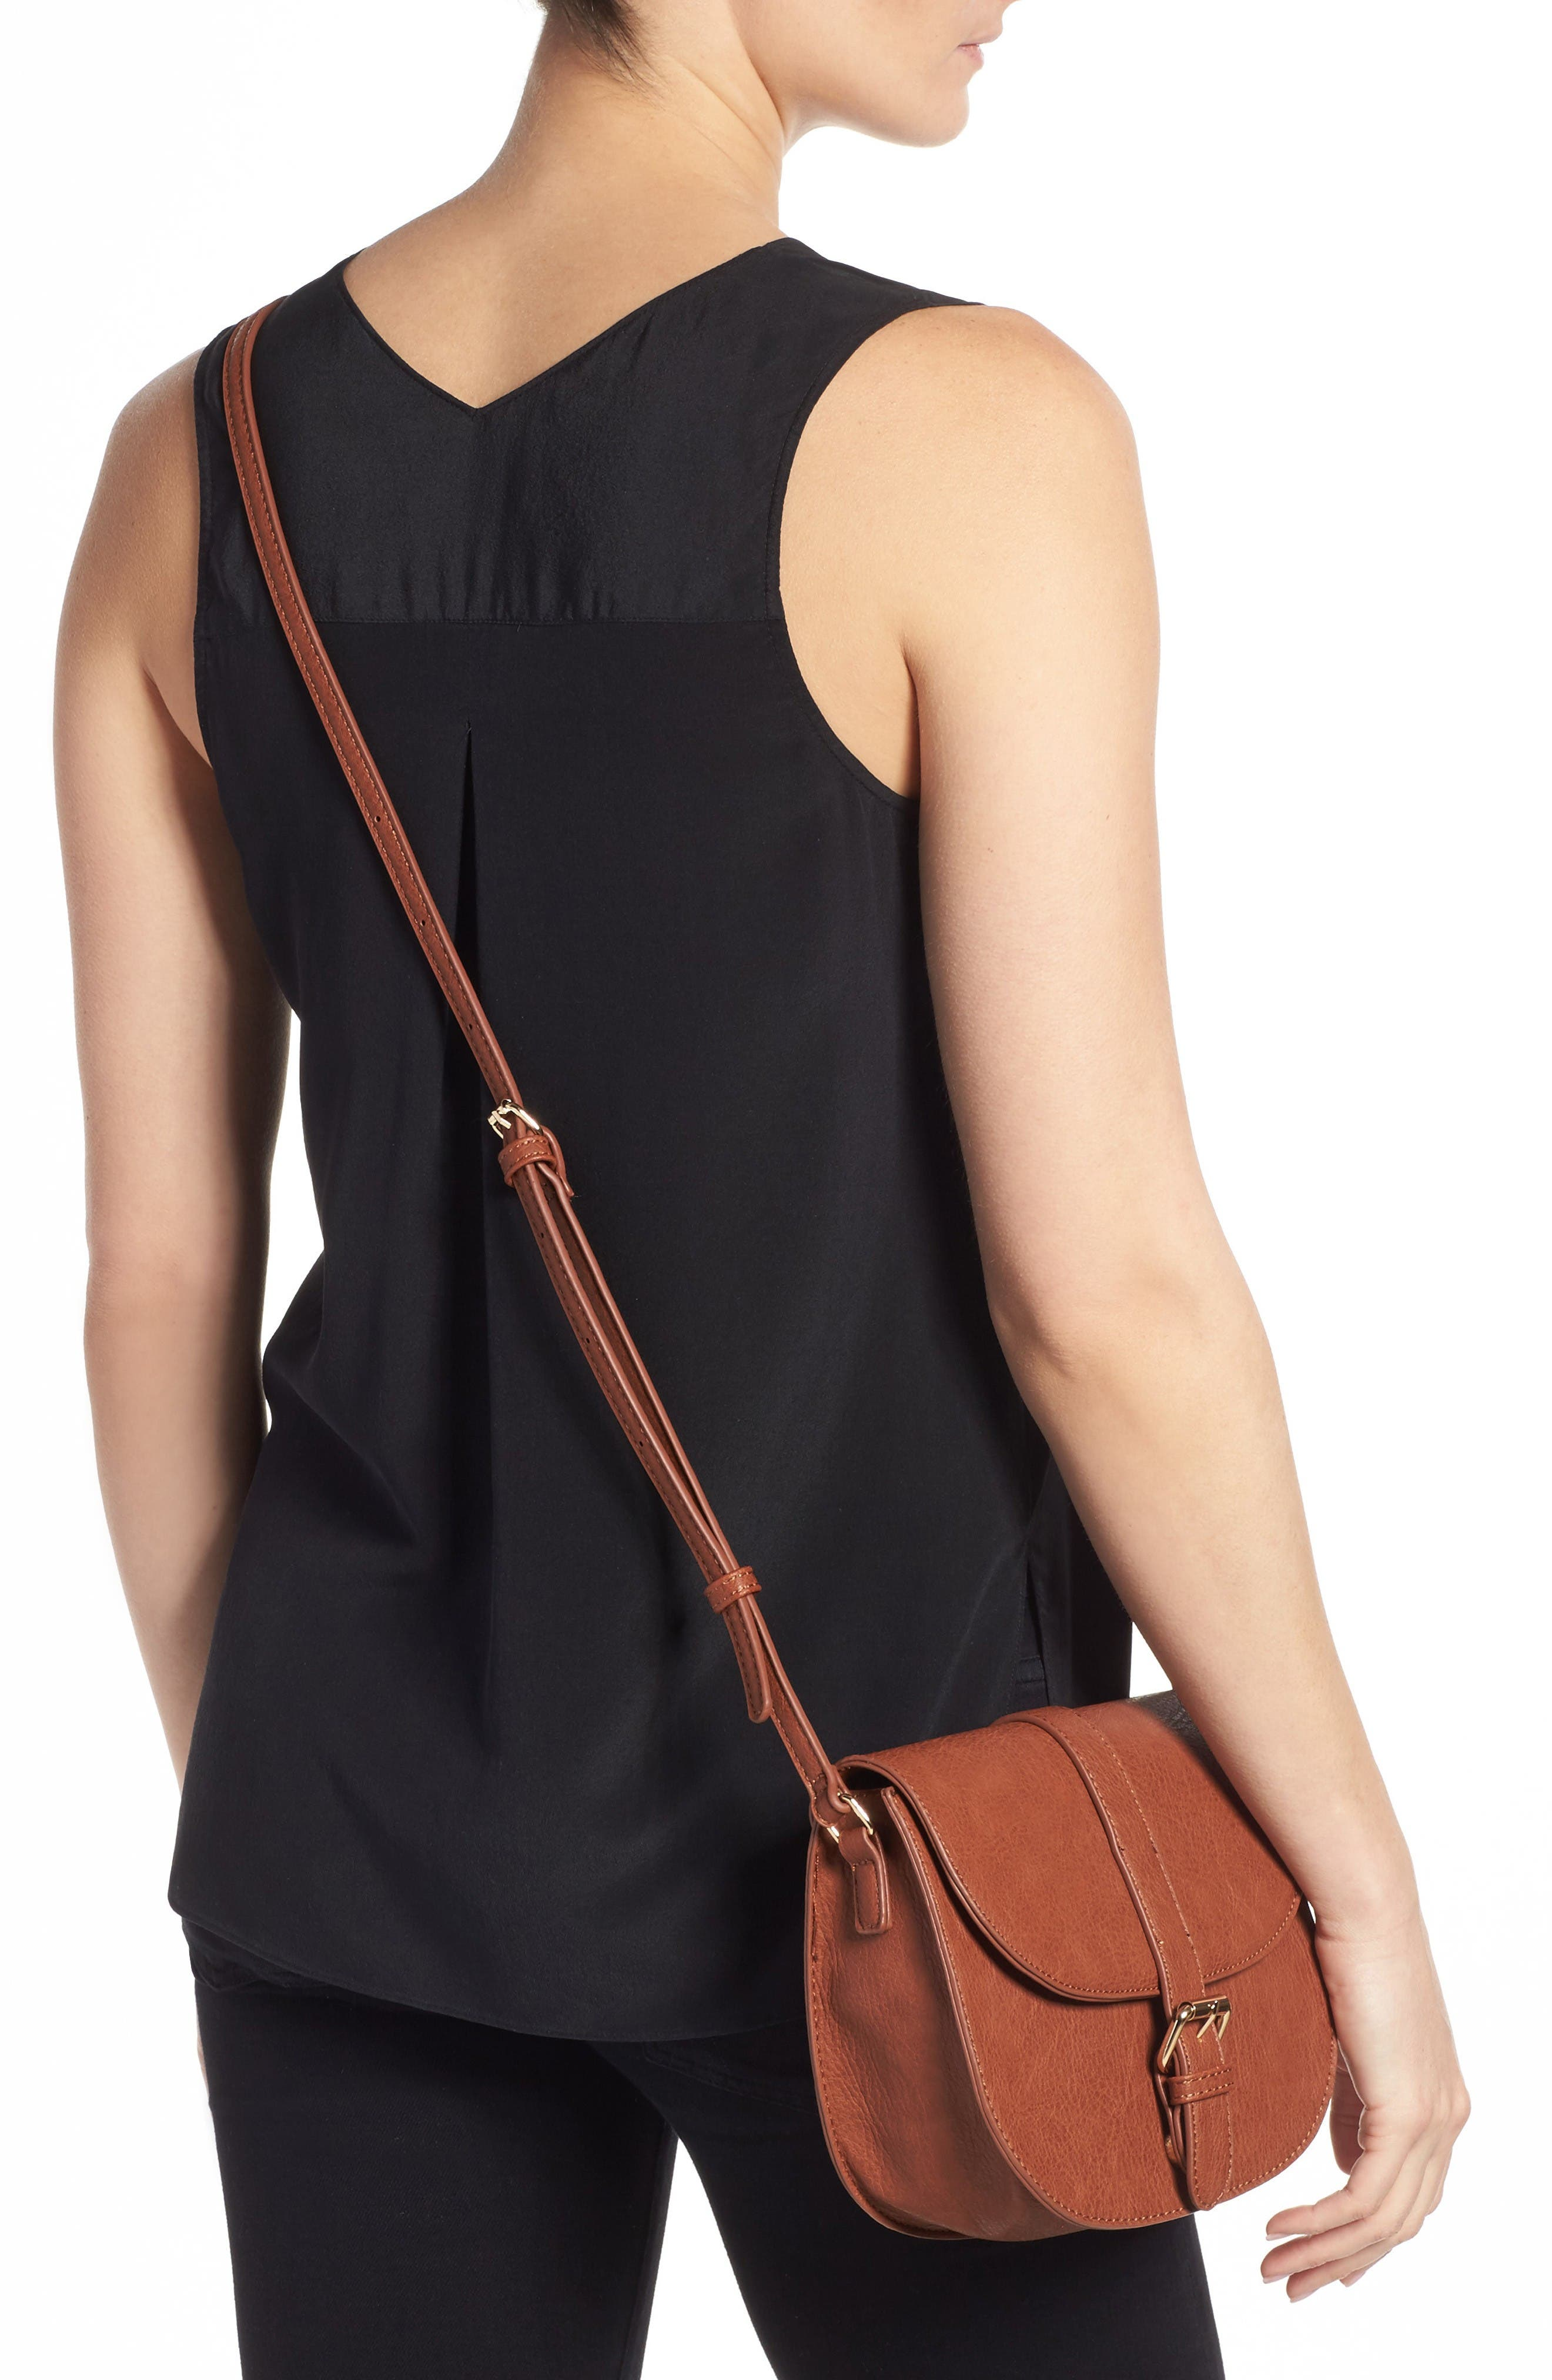 Alternate Image 2  - Emperia Faux Leather Saddle Bag (Special Purchase)